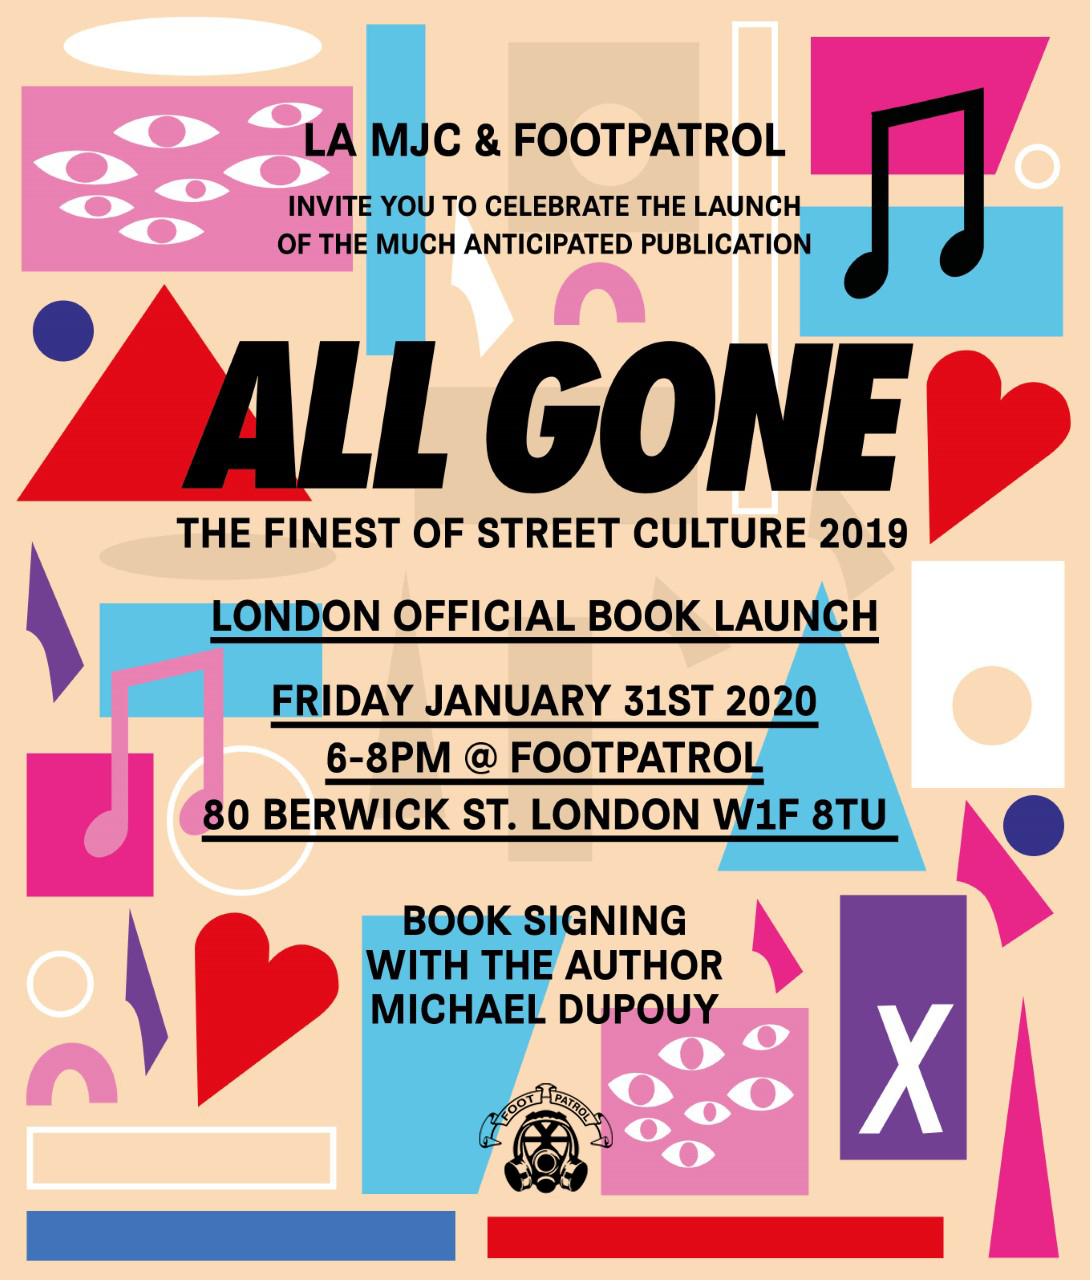 All Gone 2019 Book Signing with Michael Dupouy